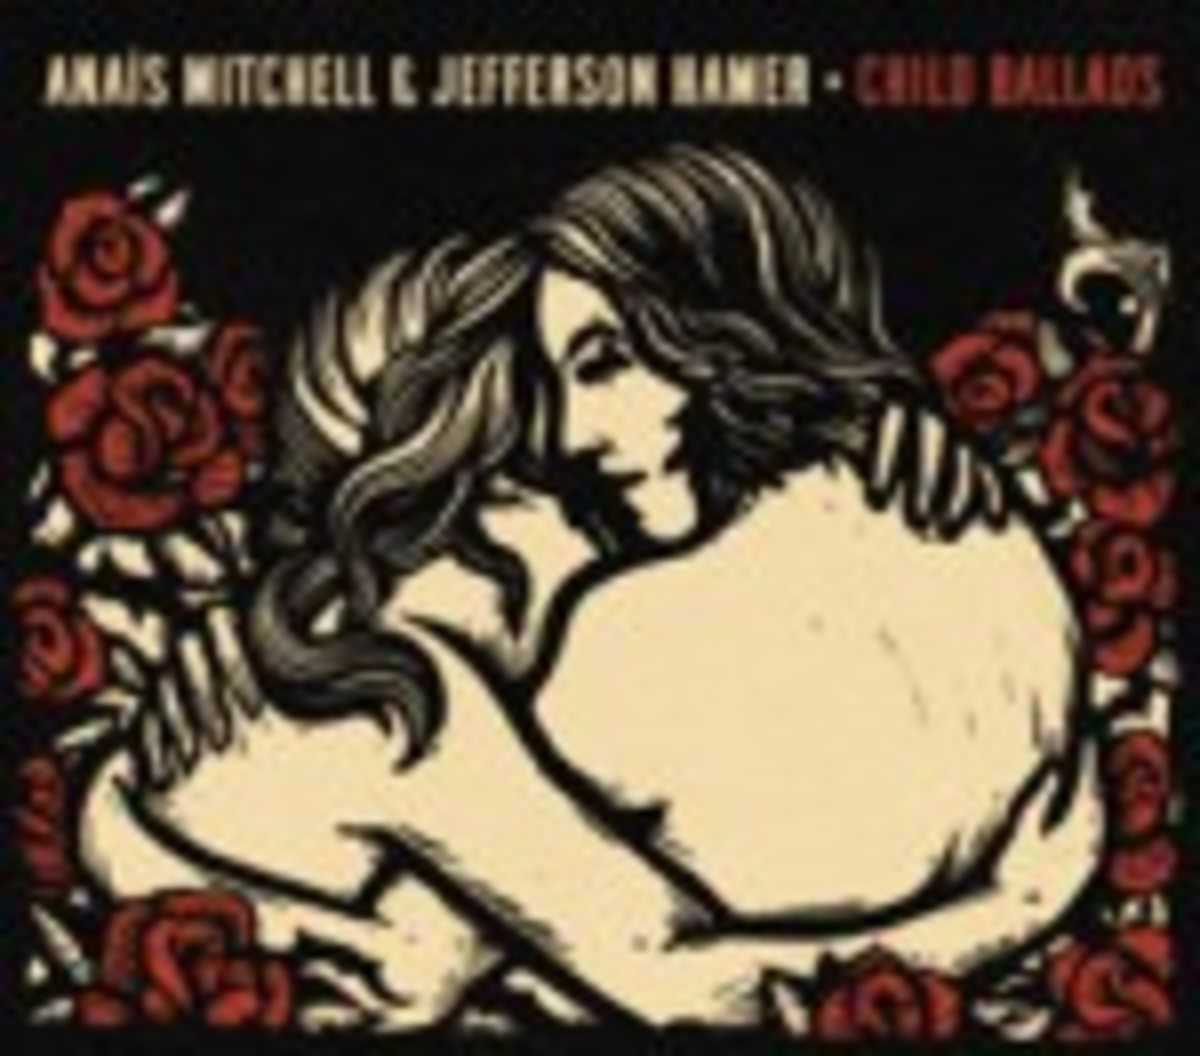 Anais Mitchell and Jefferson Hamer Child Ballads